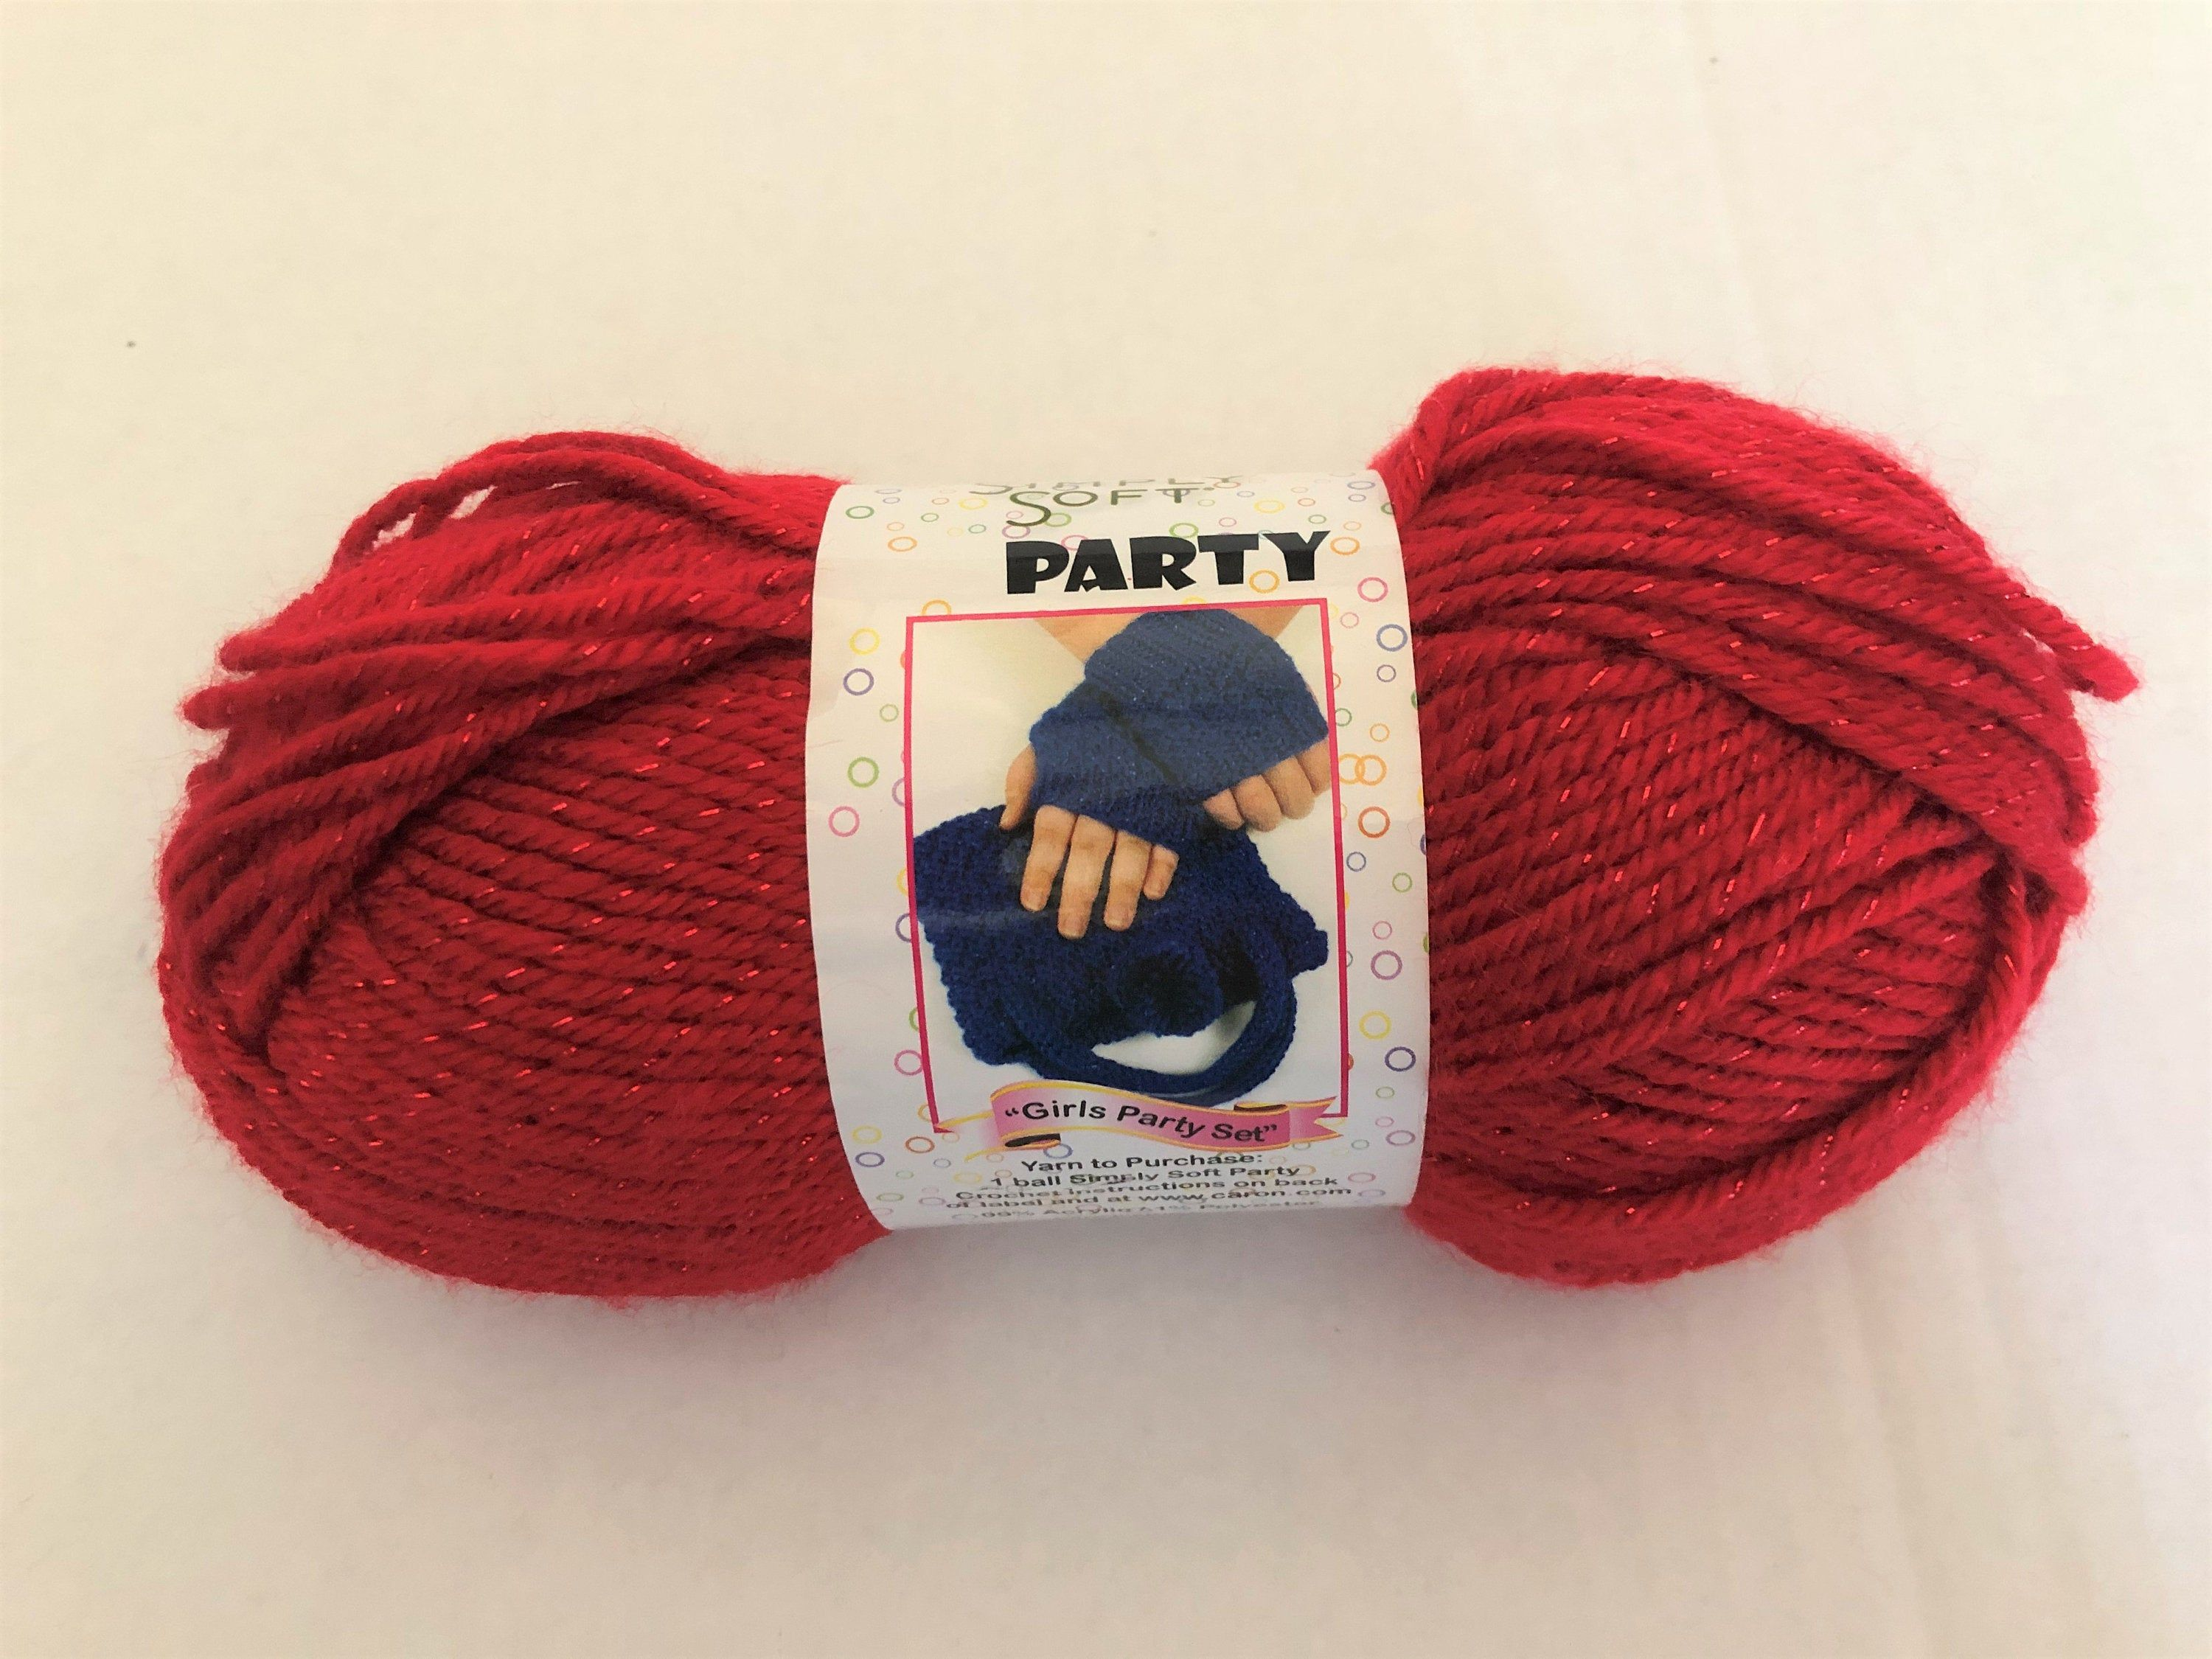 Caron Simply Soft Party Yarn-Rich Red Sparkle